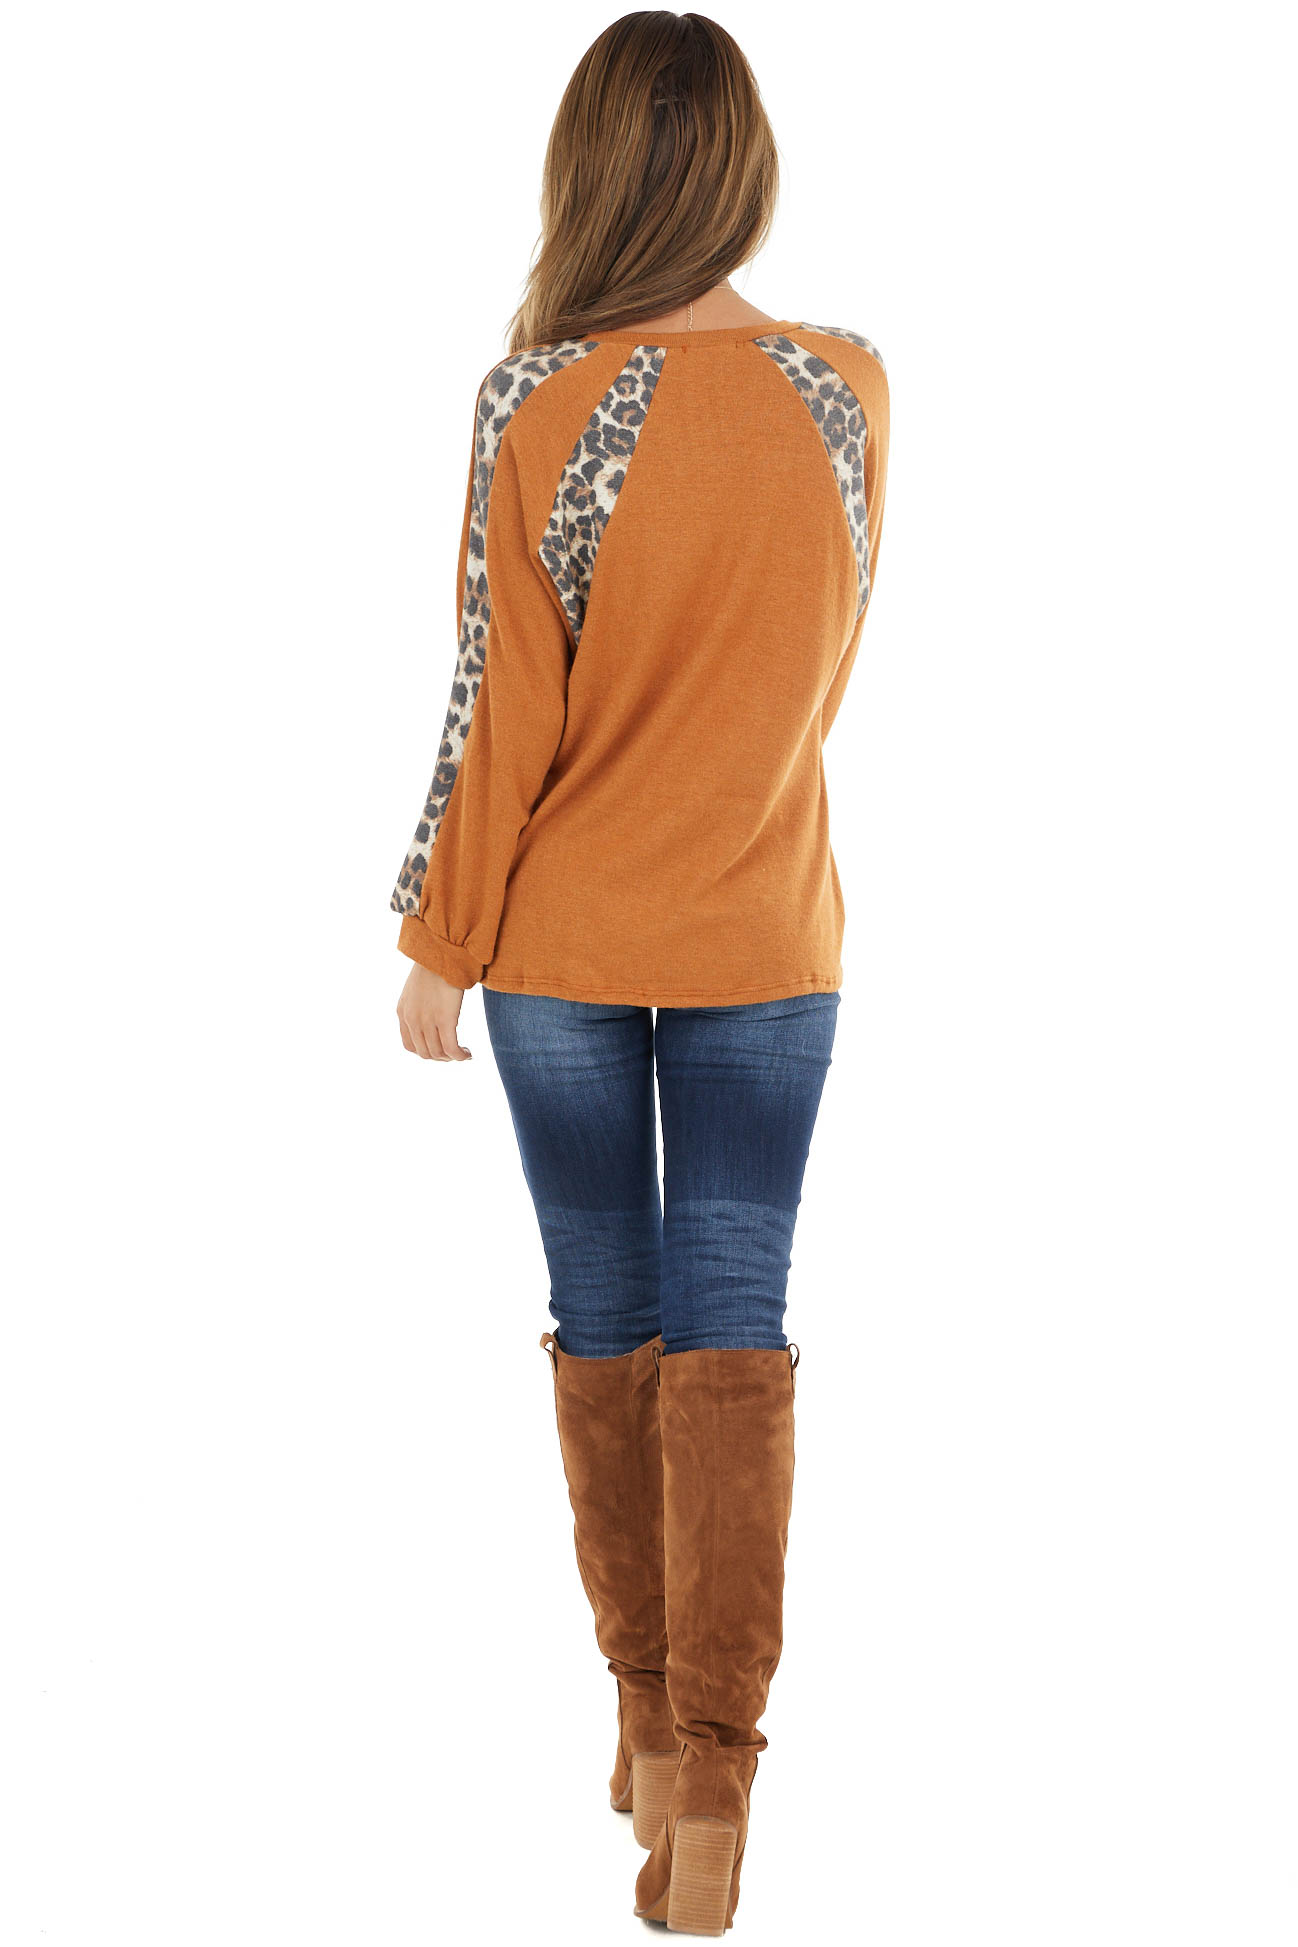 Tawny and Leopard Print Colorblock Long Sleeve Top